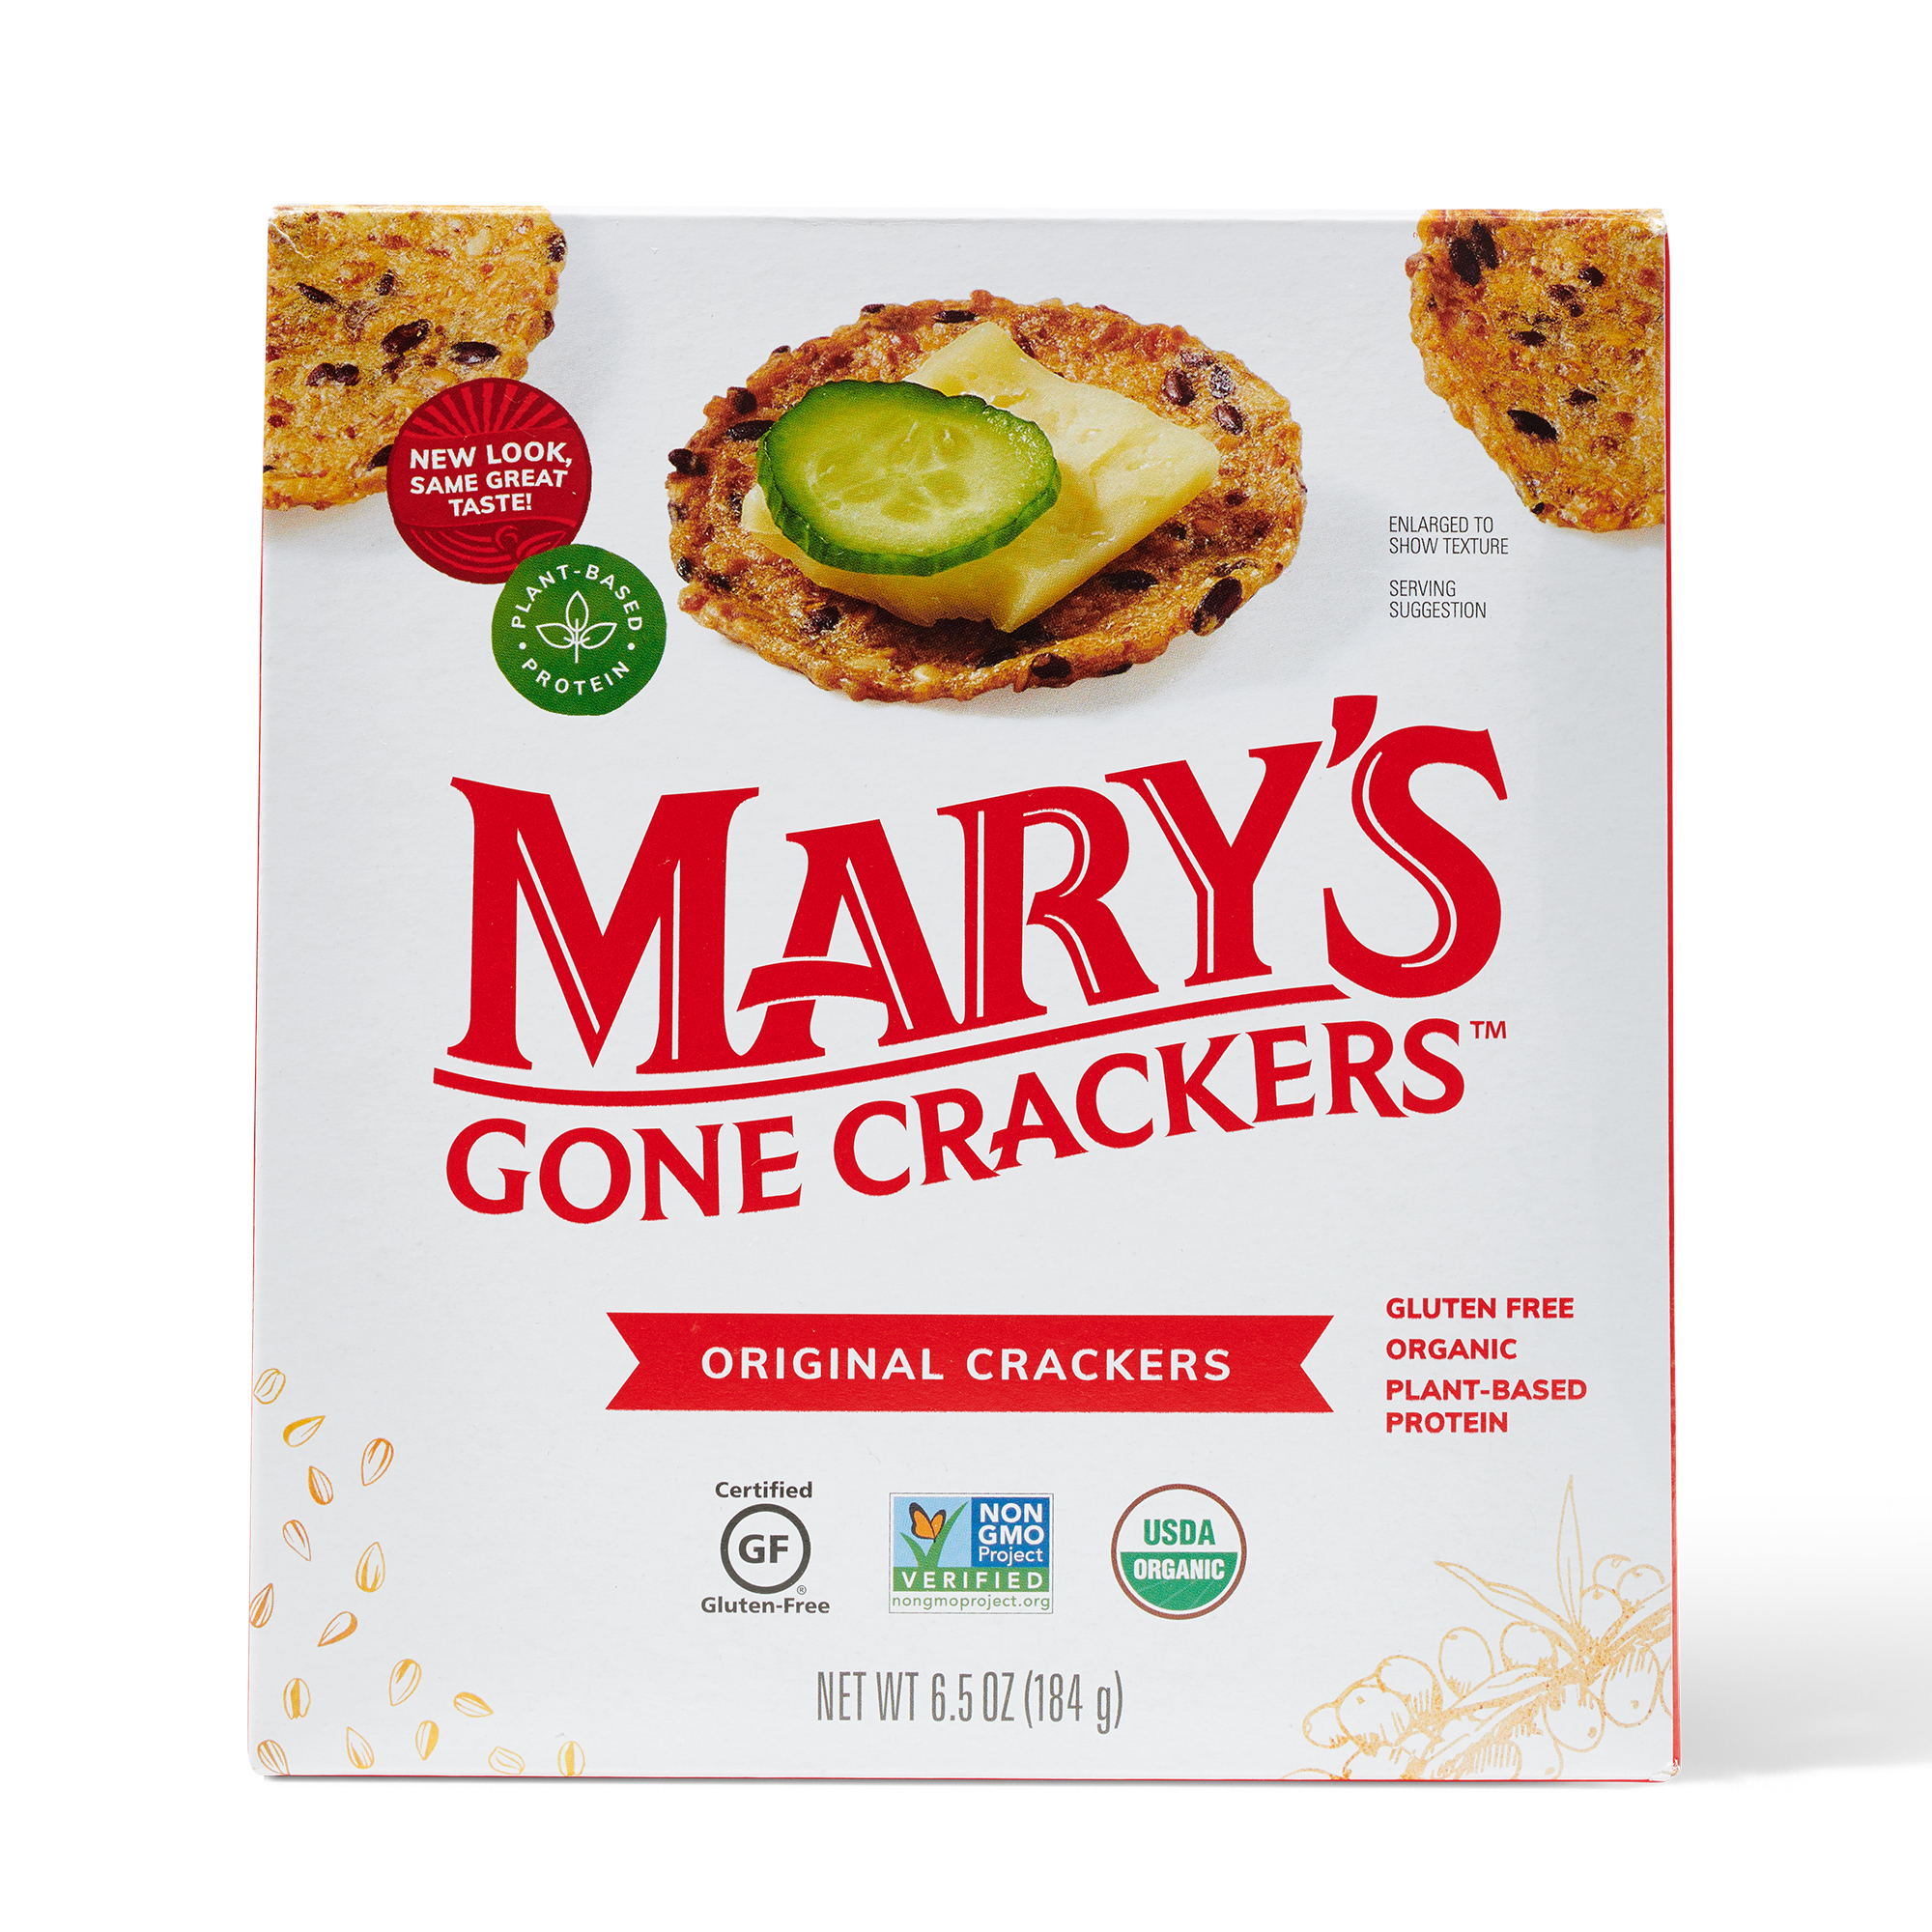 Mary's Gone Crackers Original Crackers